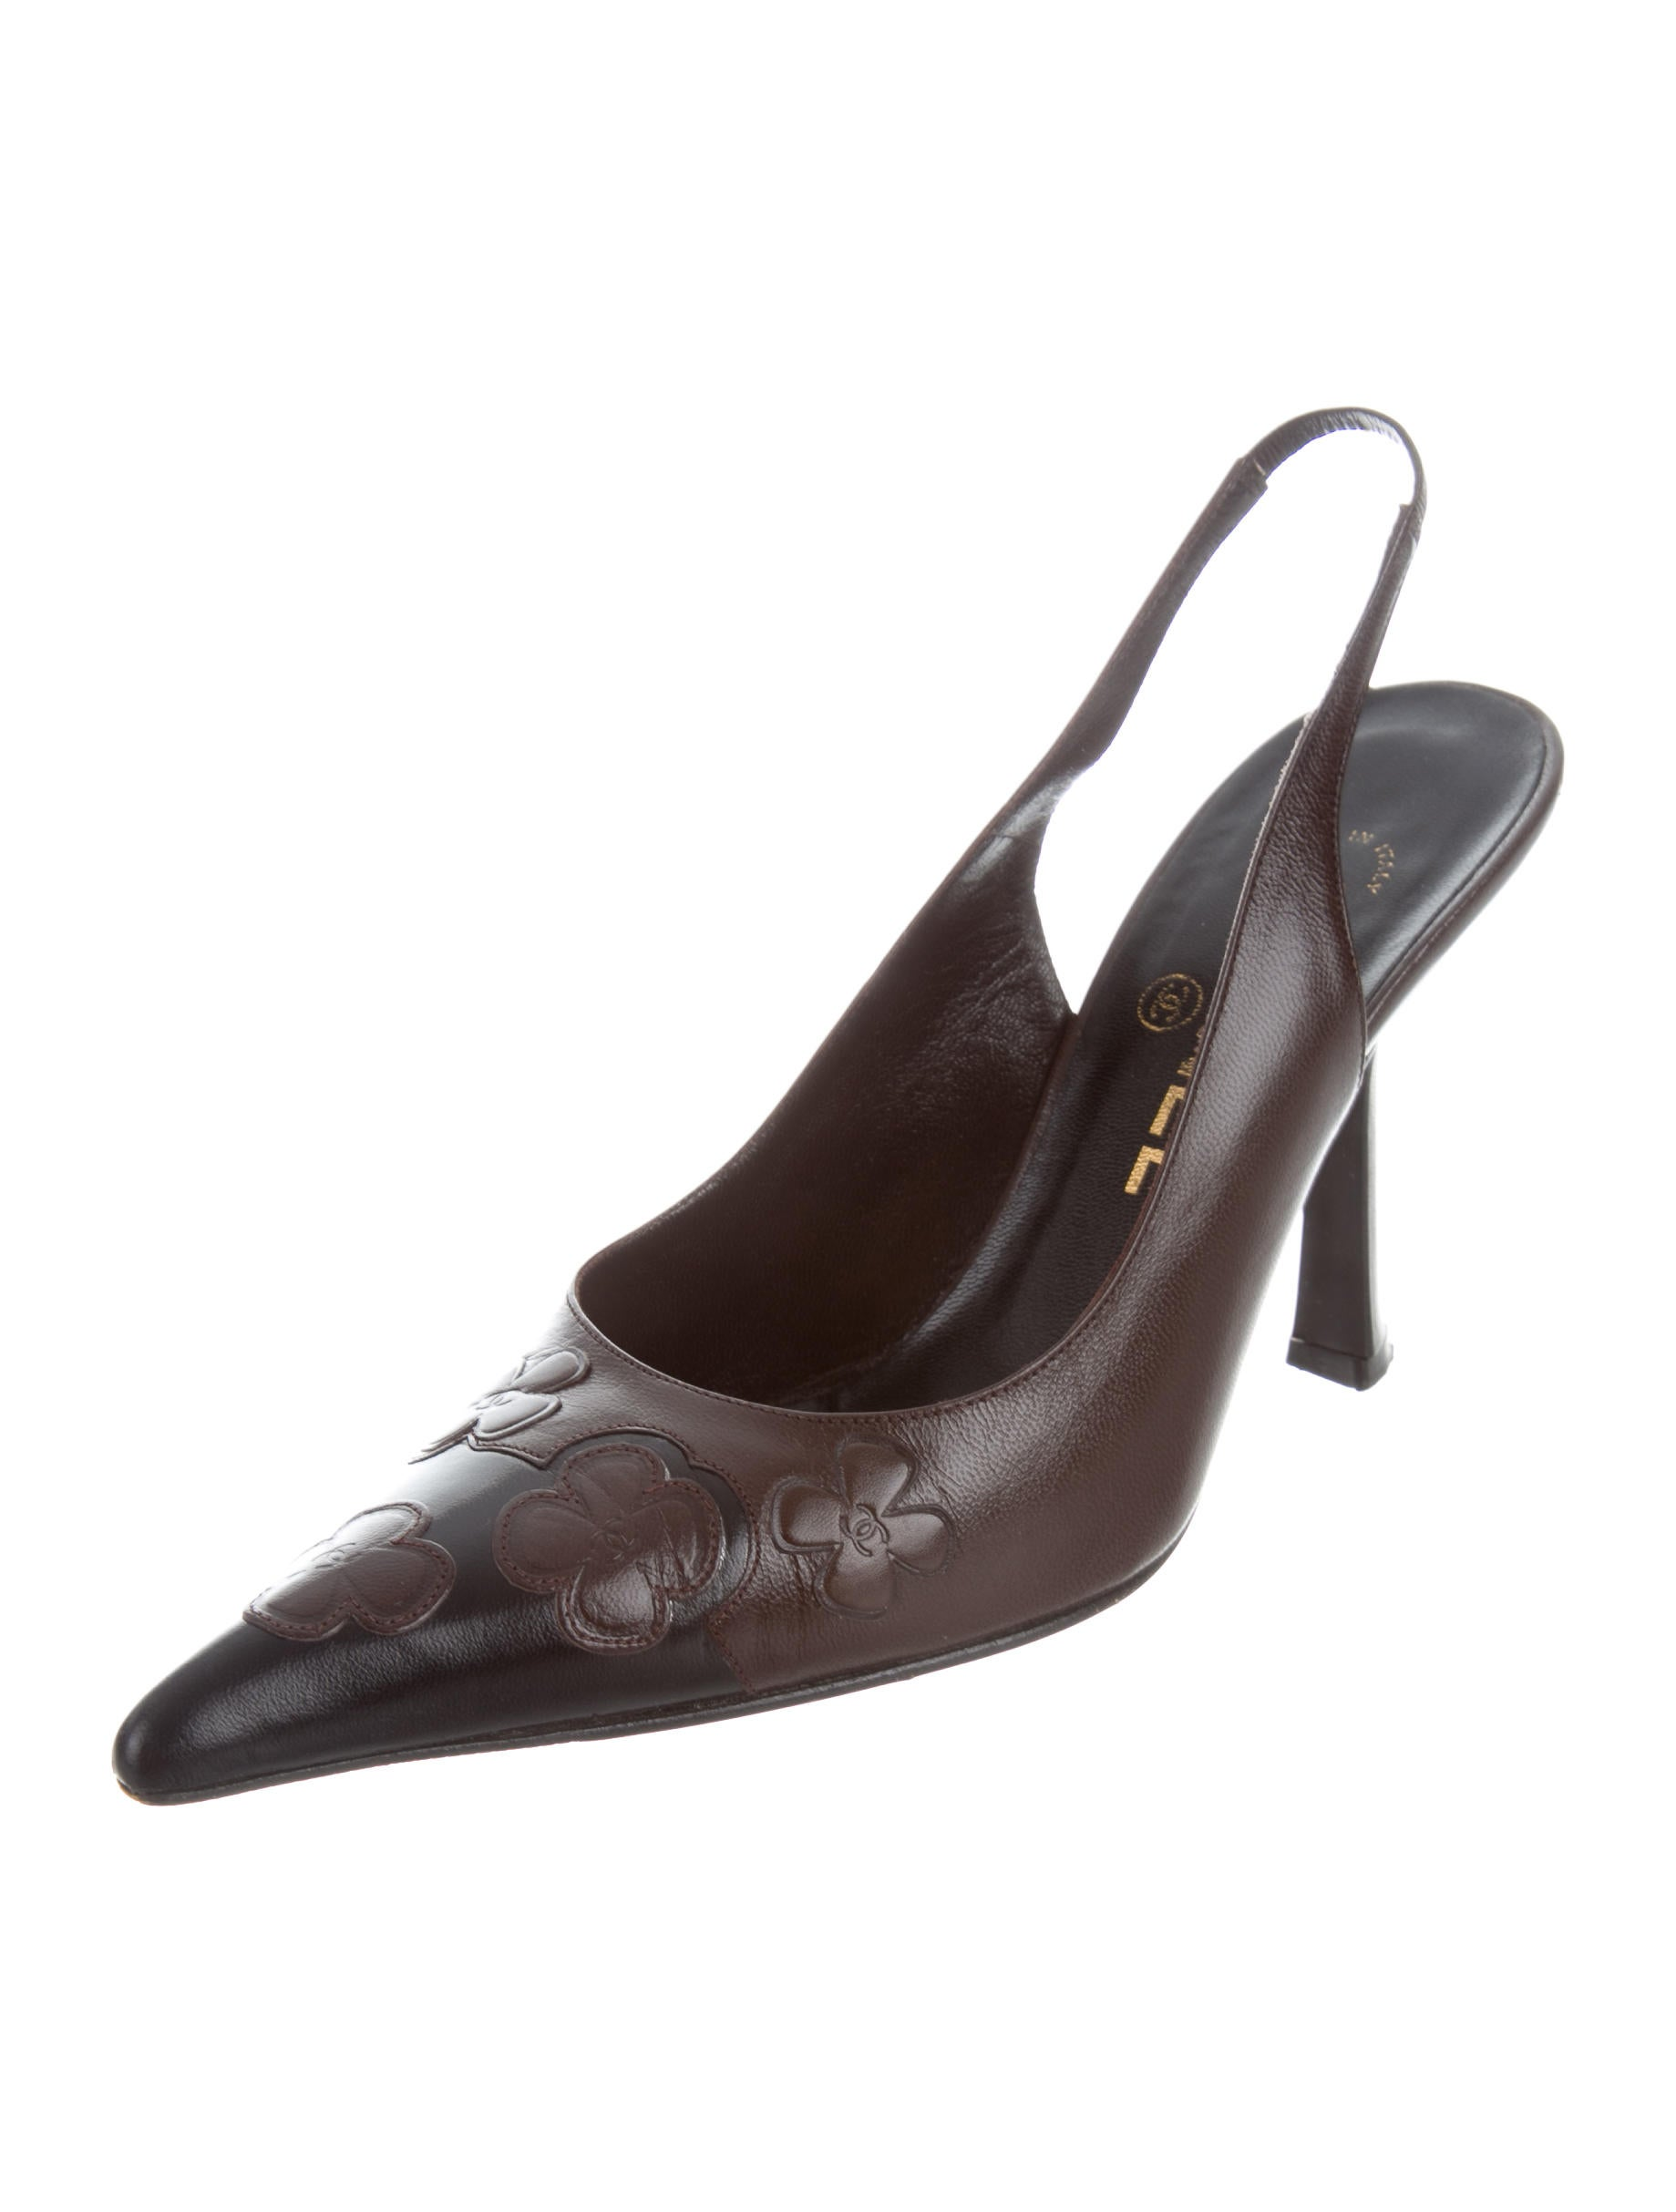 Chanel Leather Slingback Pumps - Shoes - CHA208079 | The RealReal